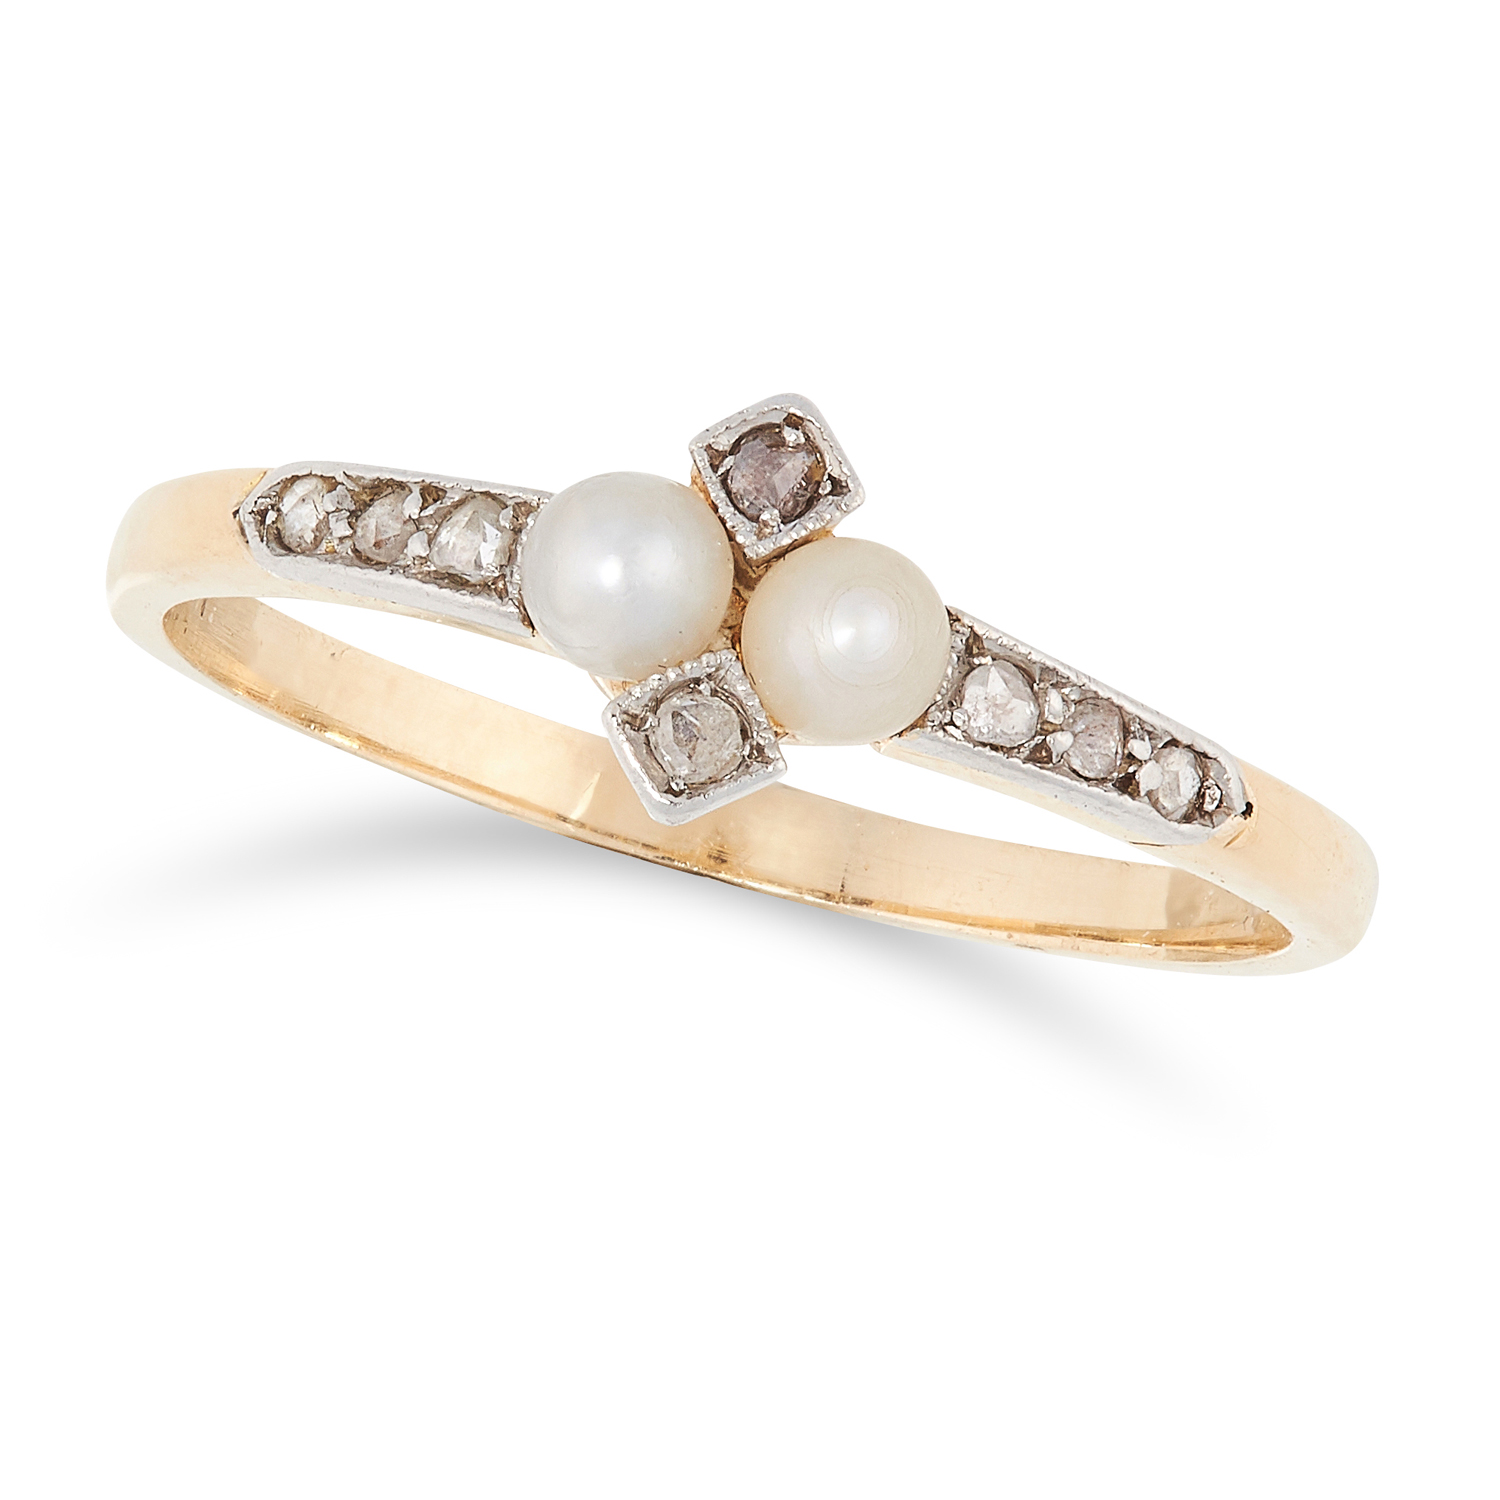 AN ANTIQUE PEARL AND DIAMOND RING in yellow gold, in quatrefoil motif, set with two pearls